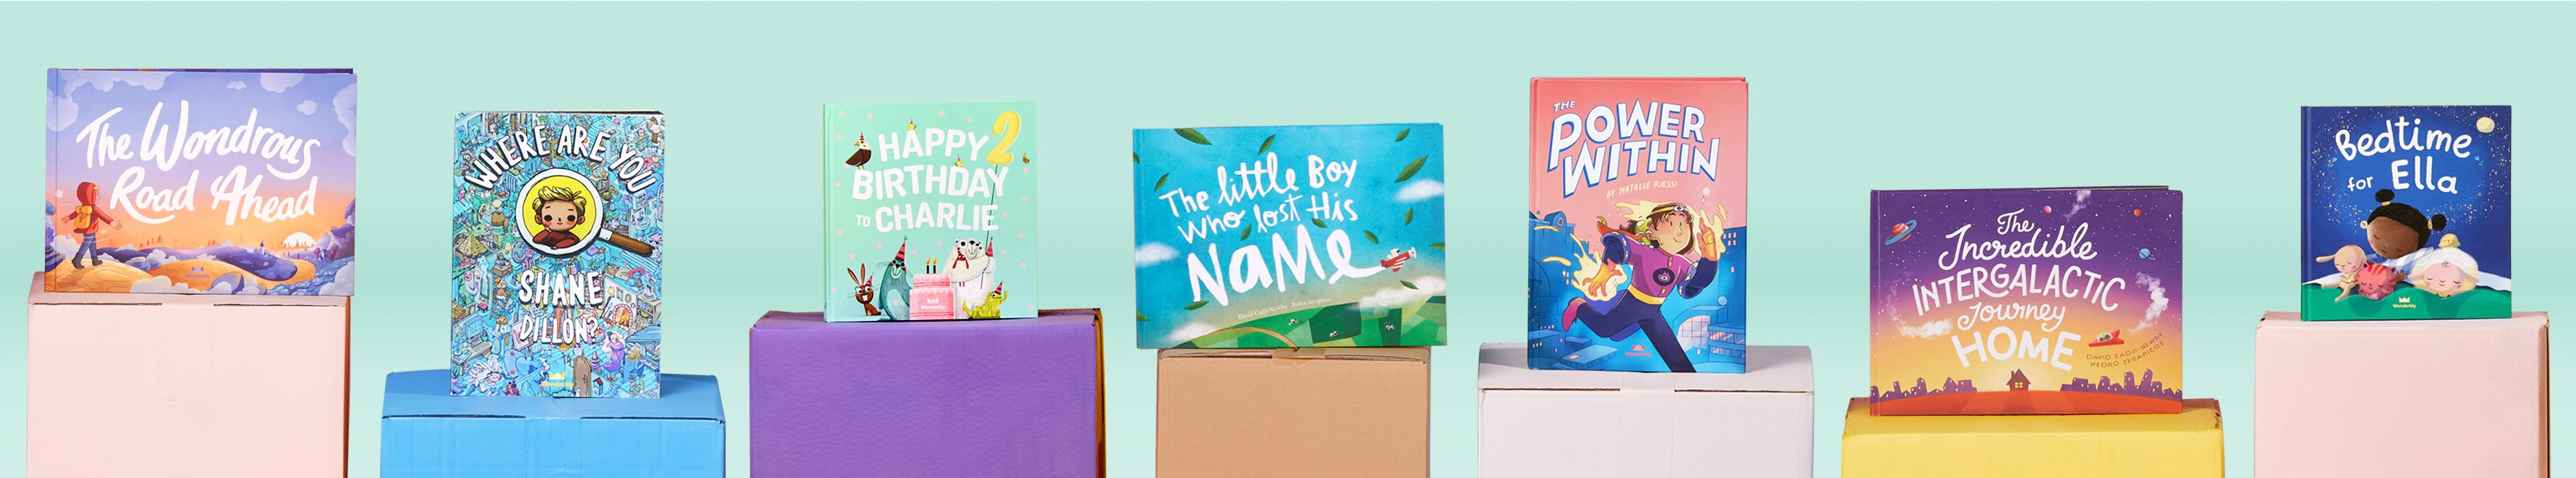 A selection of books from the Wonderbly range